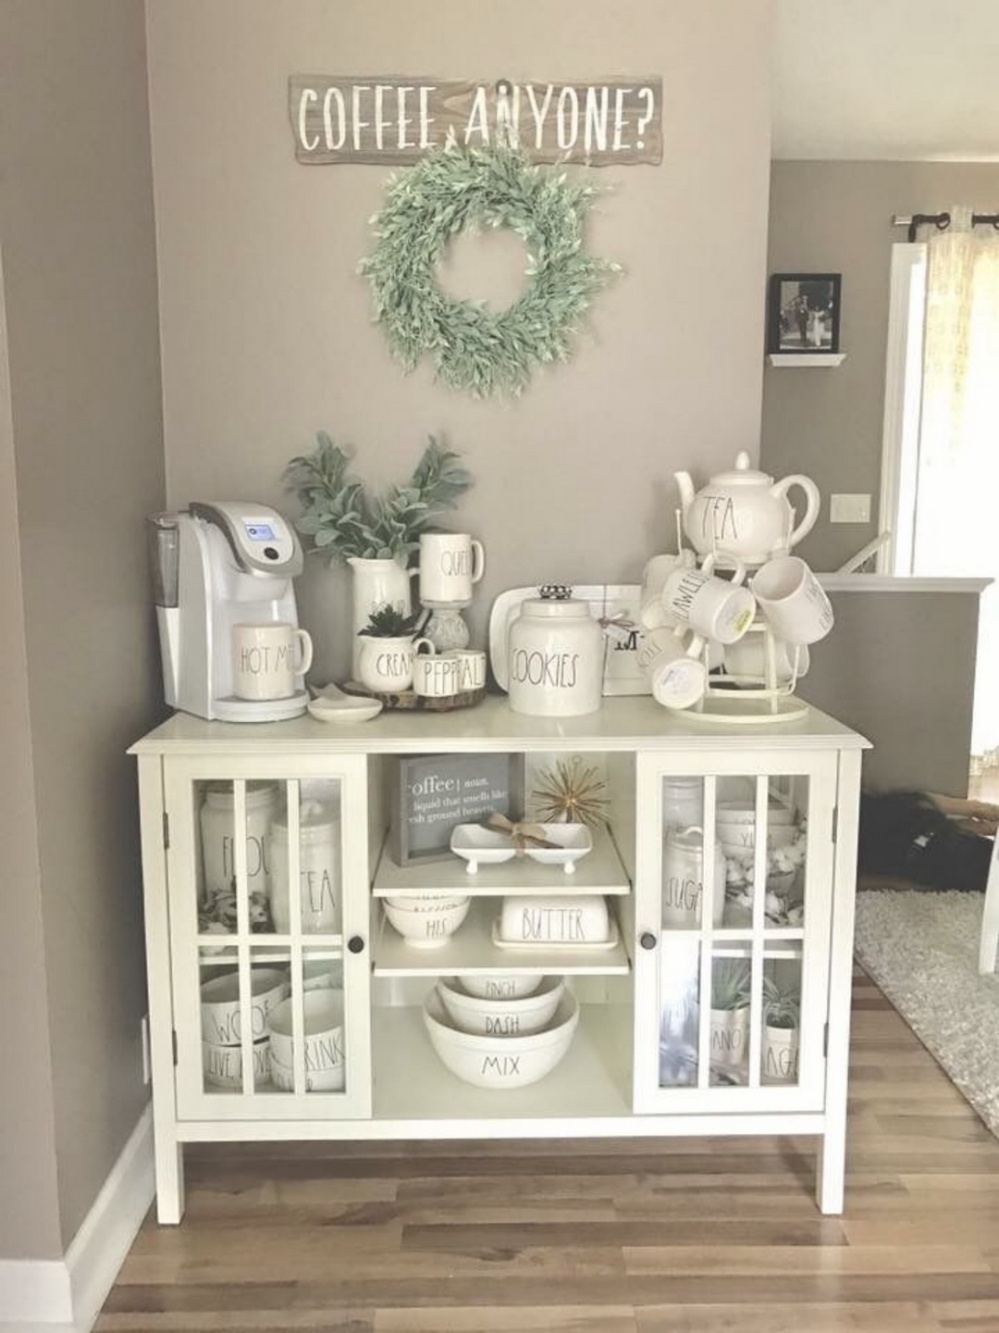 30 stylish home coffee bar ideas stunning pictures included cats and canines coffee blog. Black Bedroom Furniture Sets. Home Design Ideas